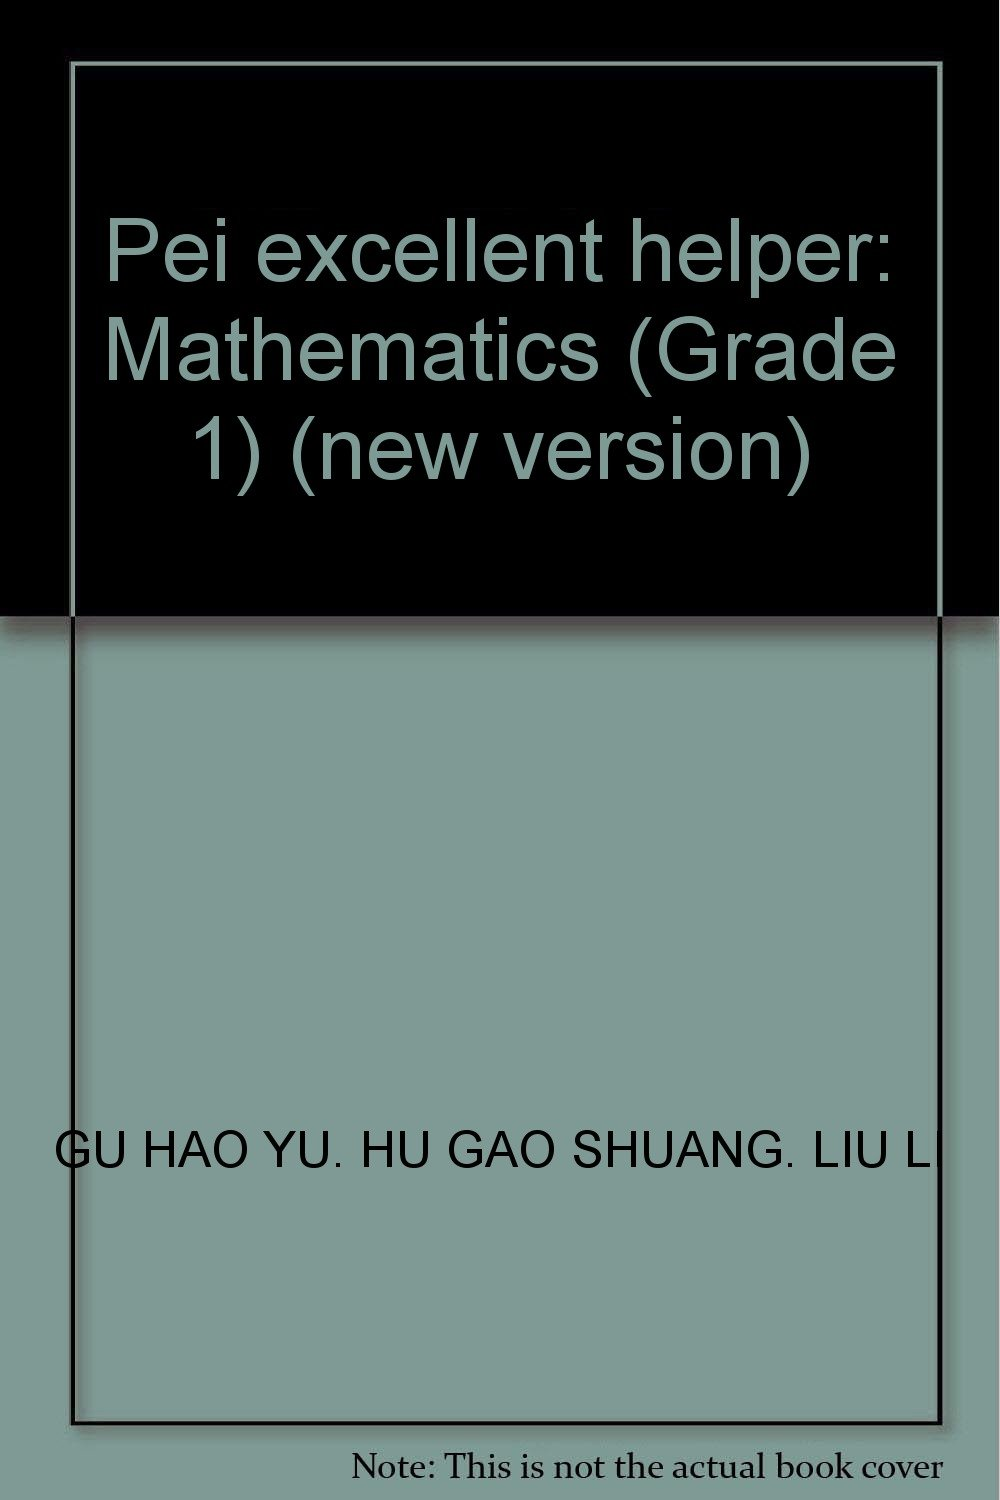 pei excellent helper mathematics grade 1 new version gu hao pei excellent helper mathematics grade 1 new version gu hao yu hu gao shuang liu li 9787540310264 com books